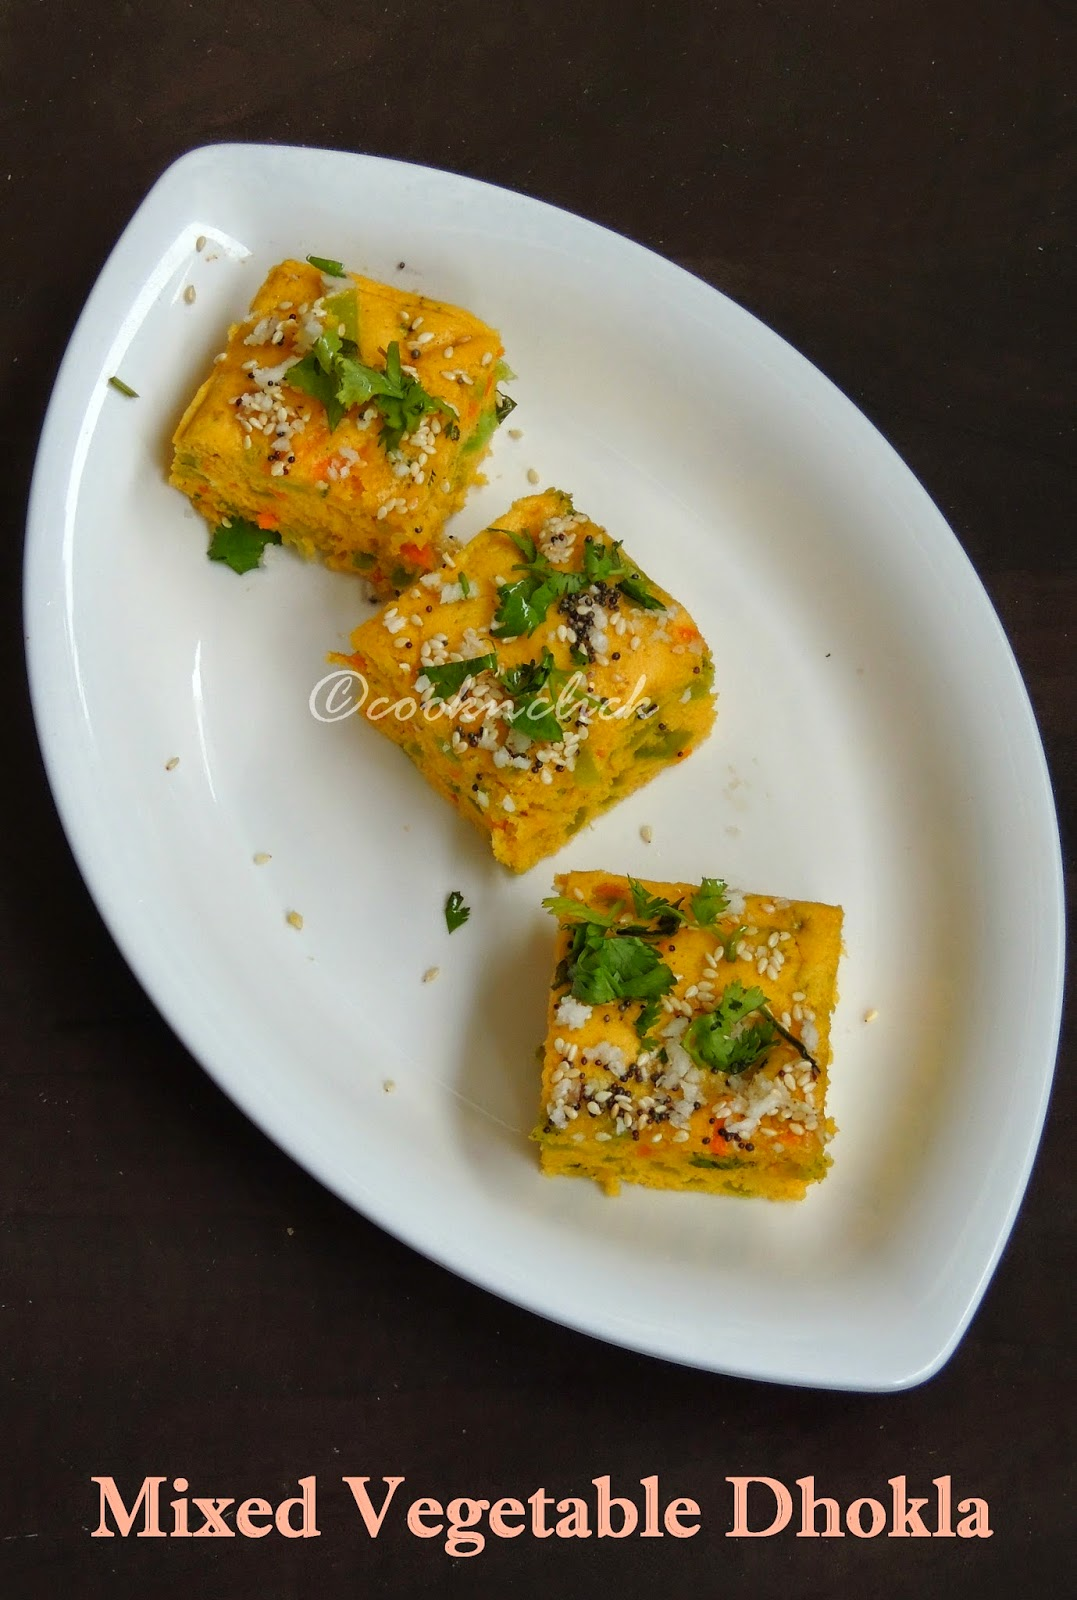 Colourful dhokla, Vegetable Khaman dhokla Mixed vegetable dhokla